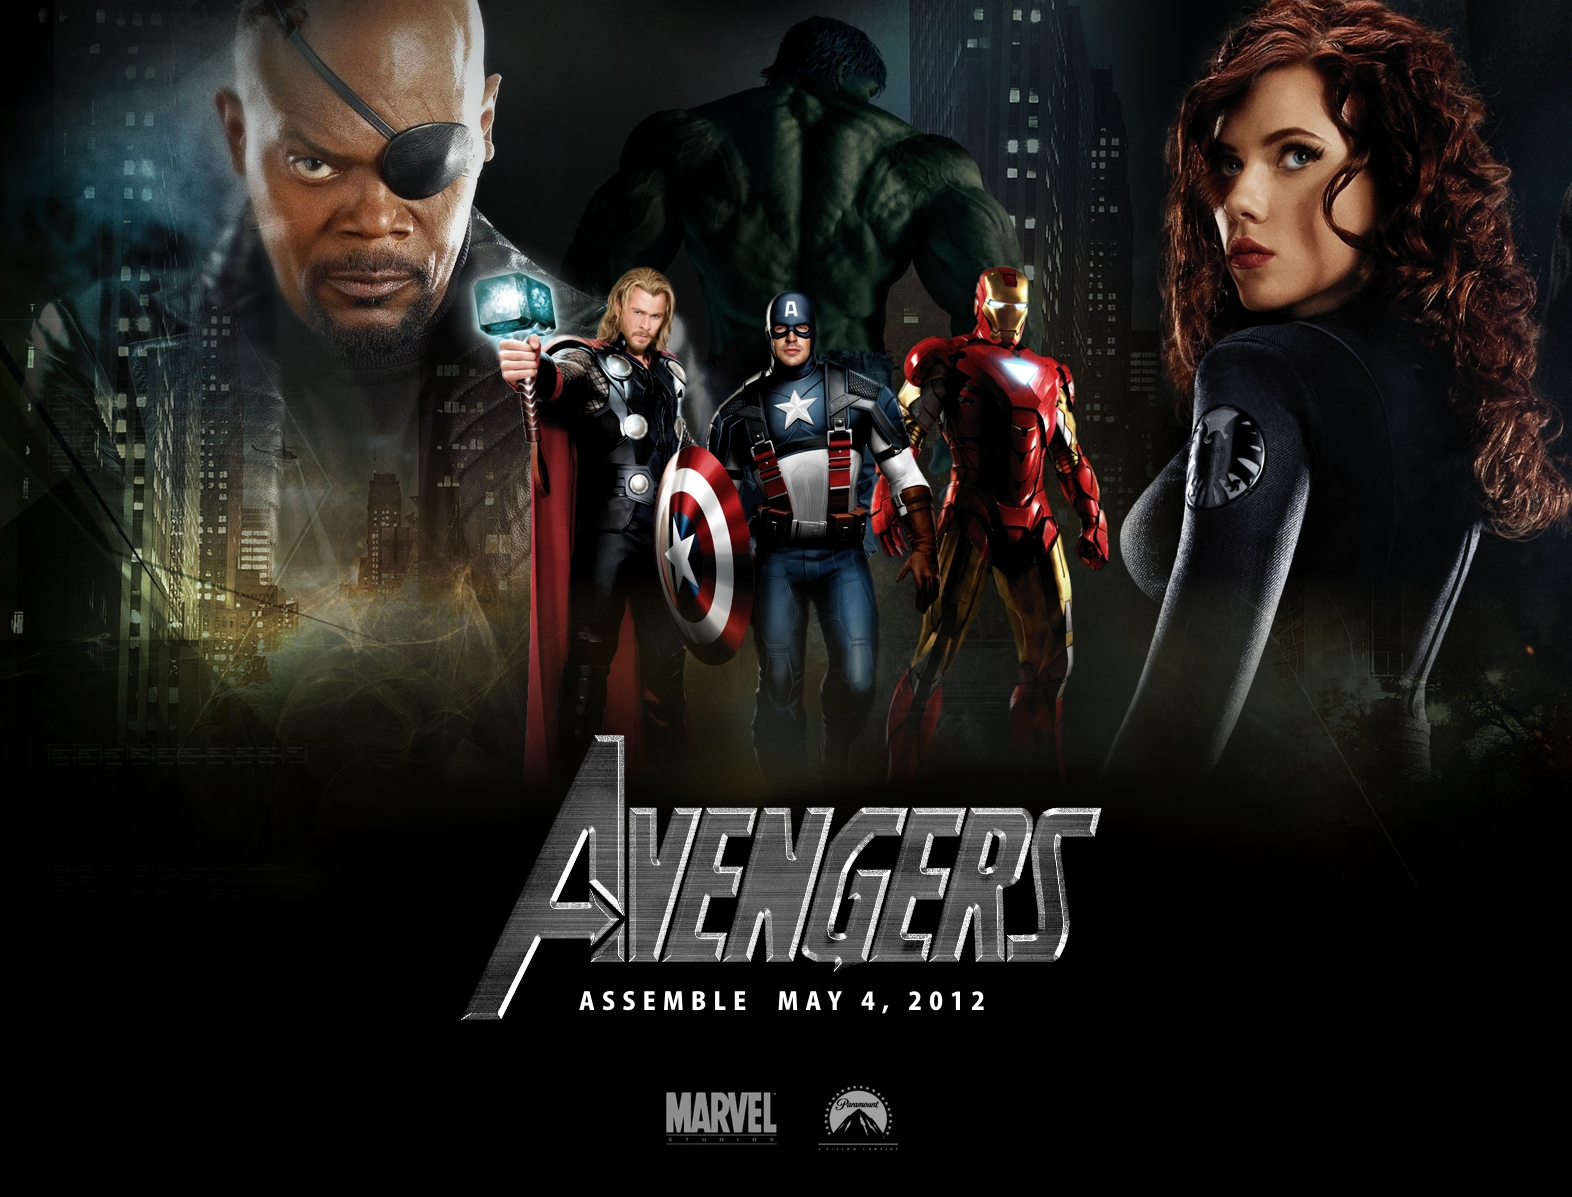 http://2.bp.blogspot.com/-4P6-EM7nuH0/T2Zm9BHxquI/AAAAAAAACLw/pqfppKUuoQs/s1600/Avengers_Movie_Poster_banner_Los_vengadores+2012.jpg